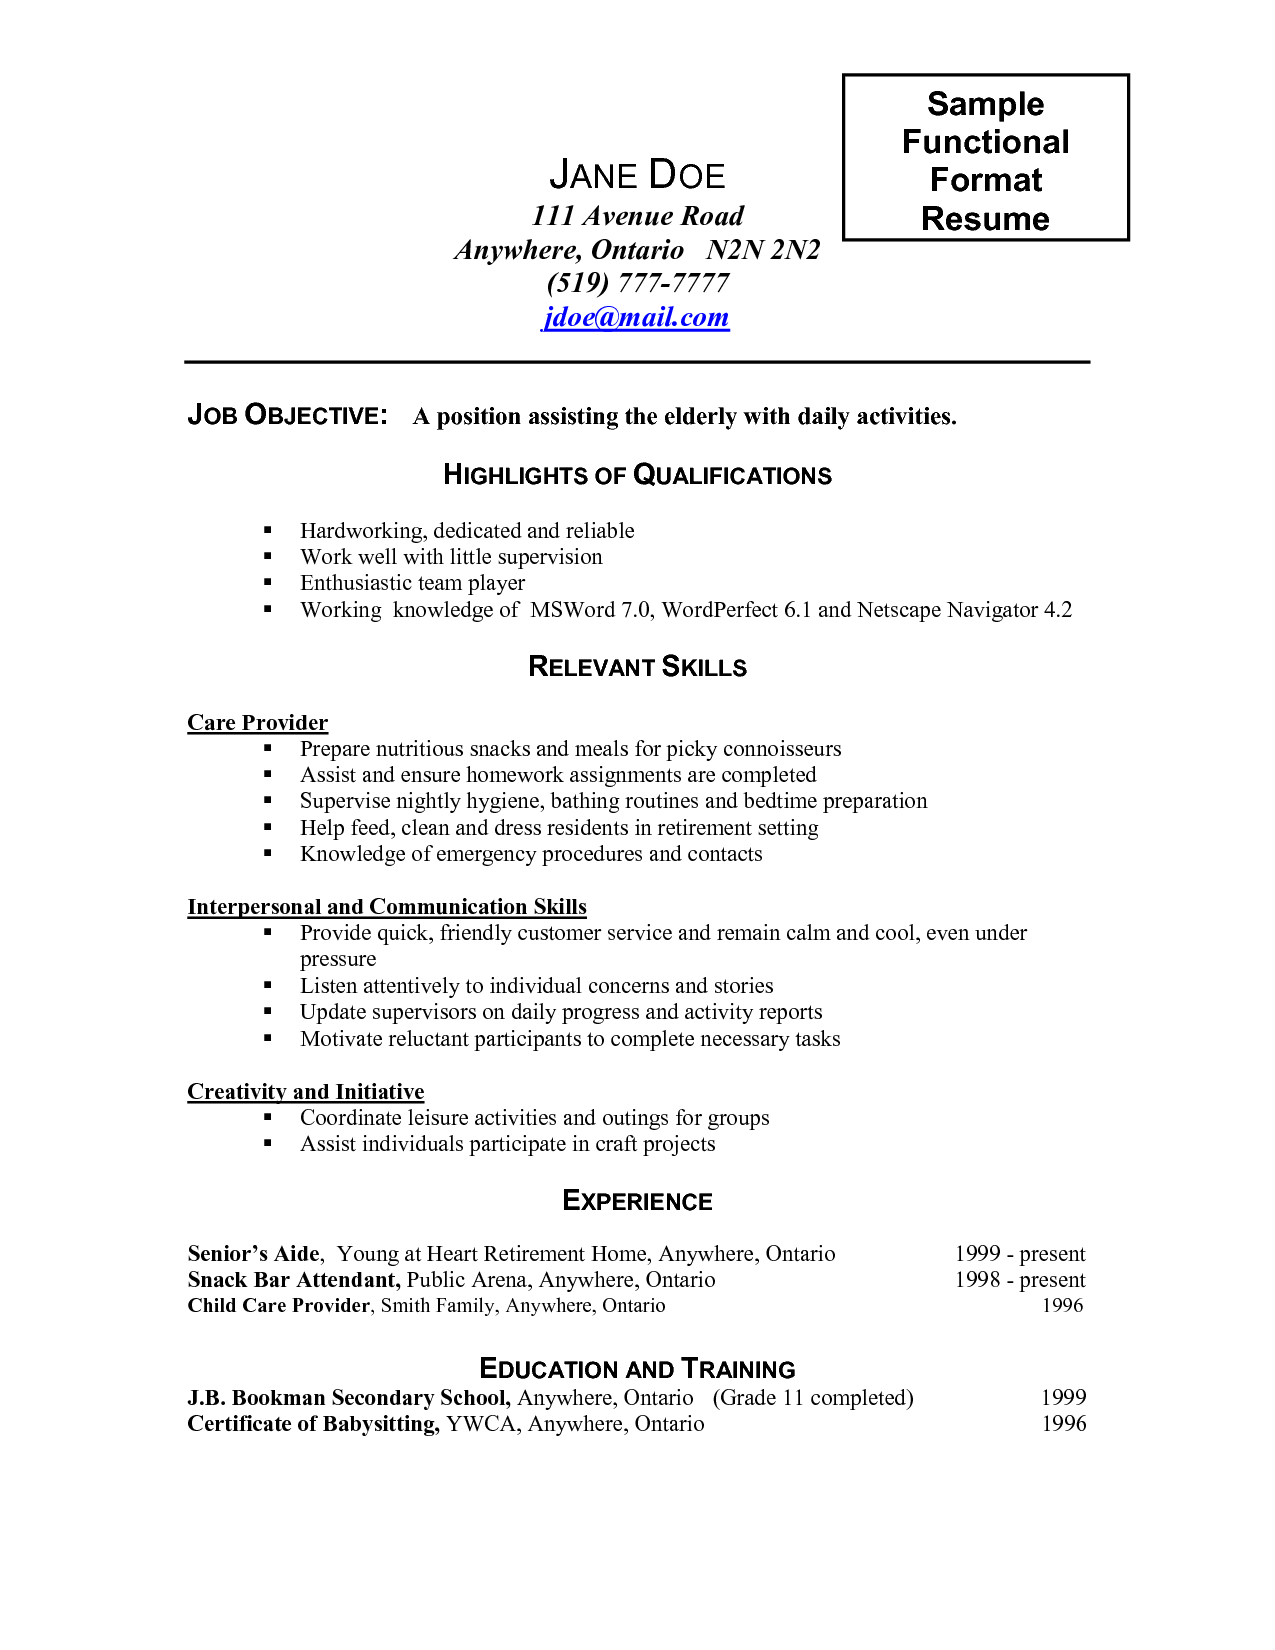 resume communication skills examples for resume school rsum - Resume Communication Skills Examples